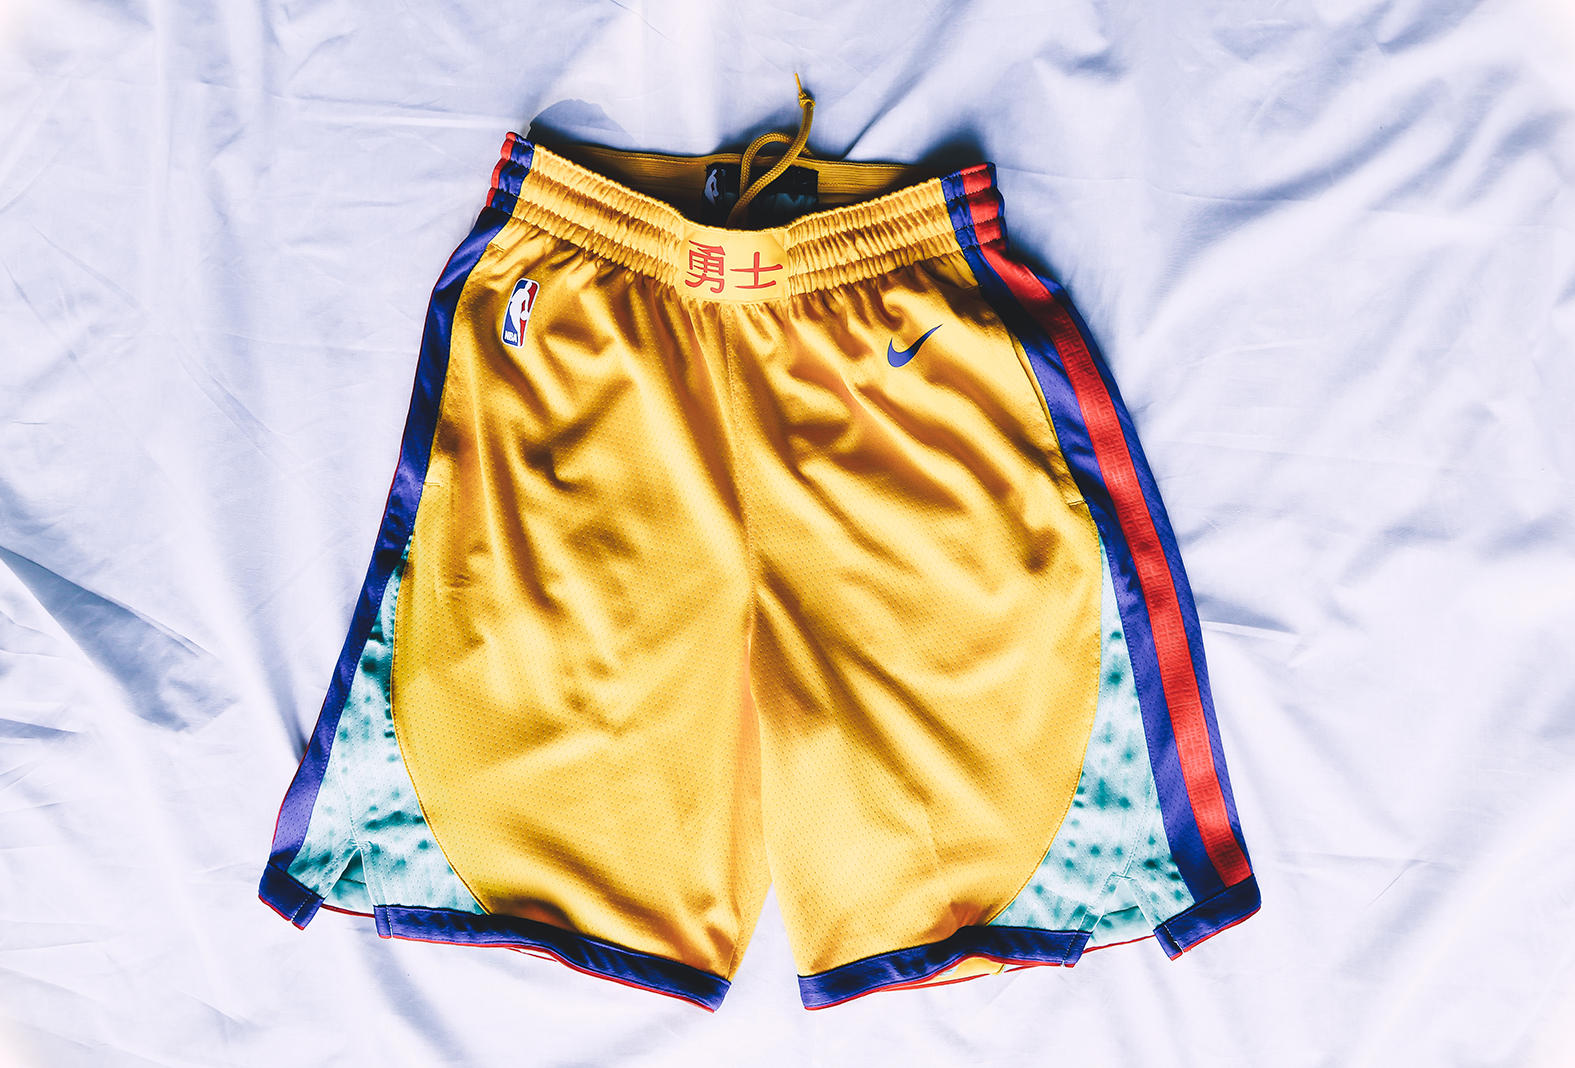 c7bbc44e69c2 The shorts are also gold and feature the Chinese characters representing  prosperity along the waistband. Other notable details include Nike Swoosh  and NBA ...